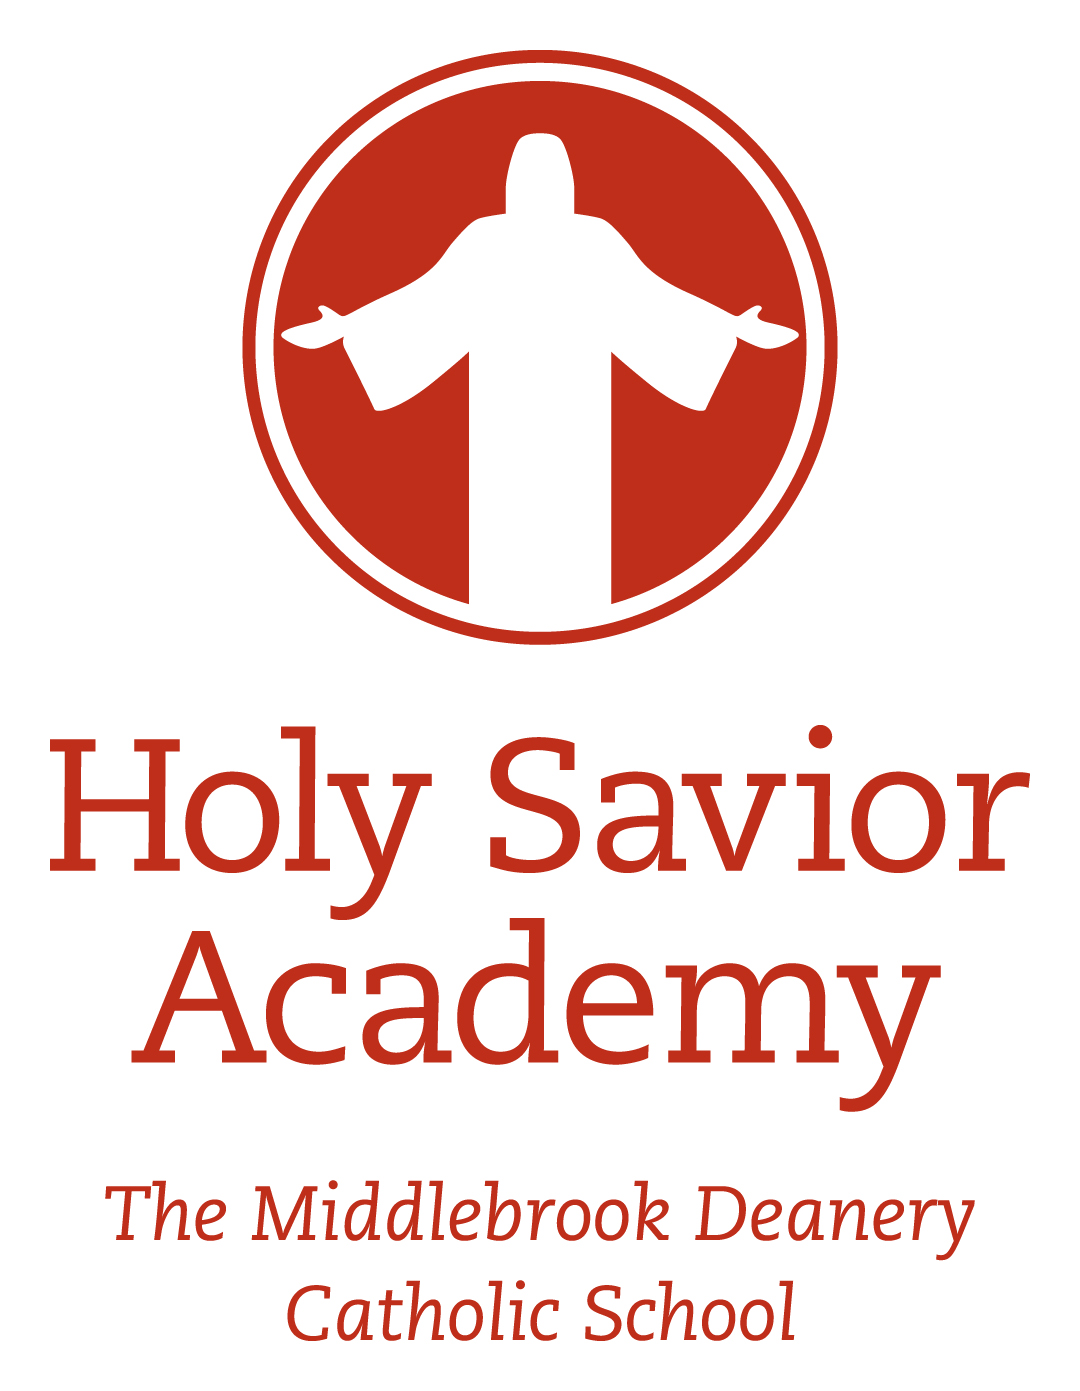 Holy Savior Academy